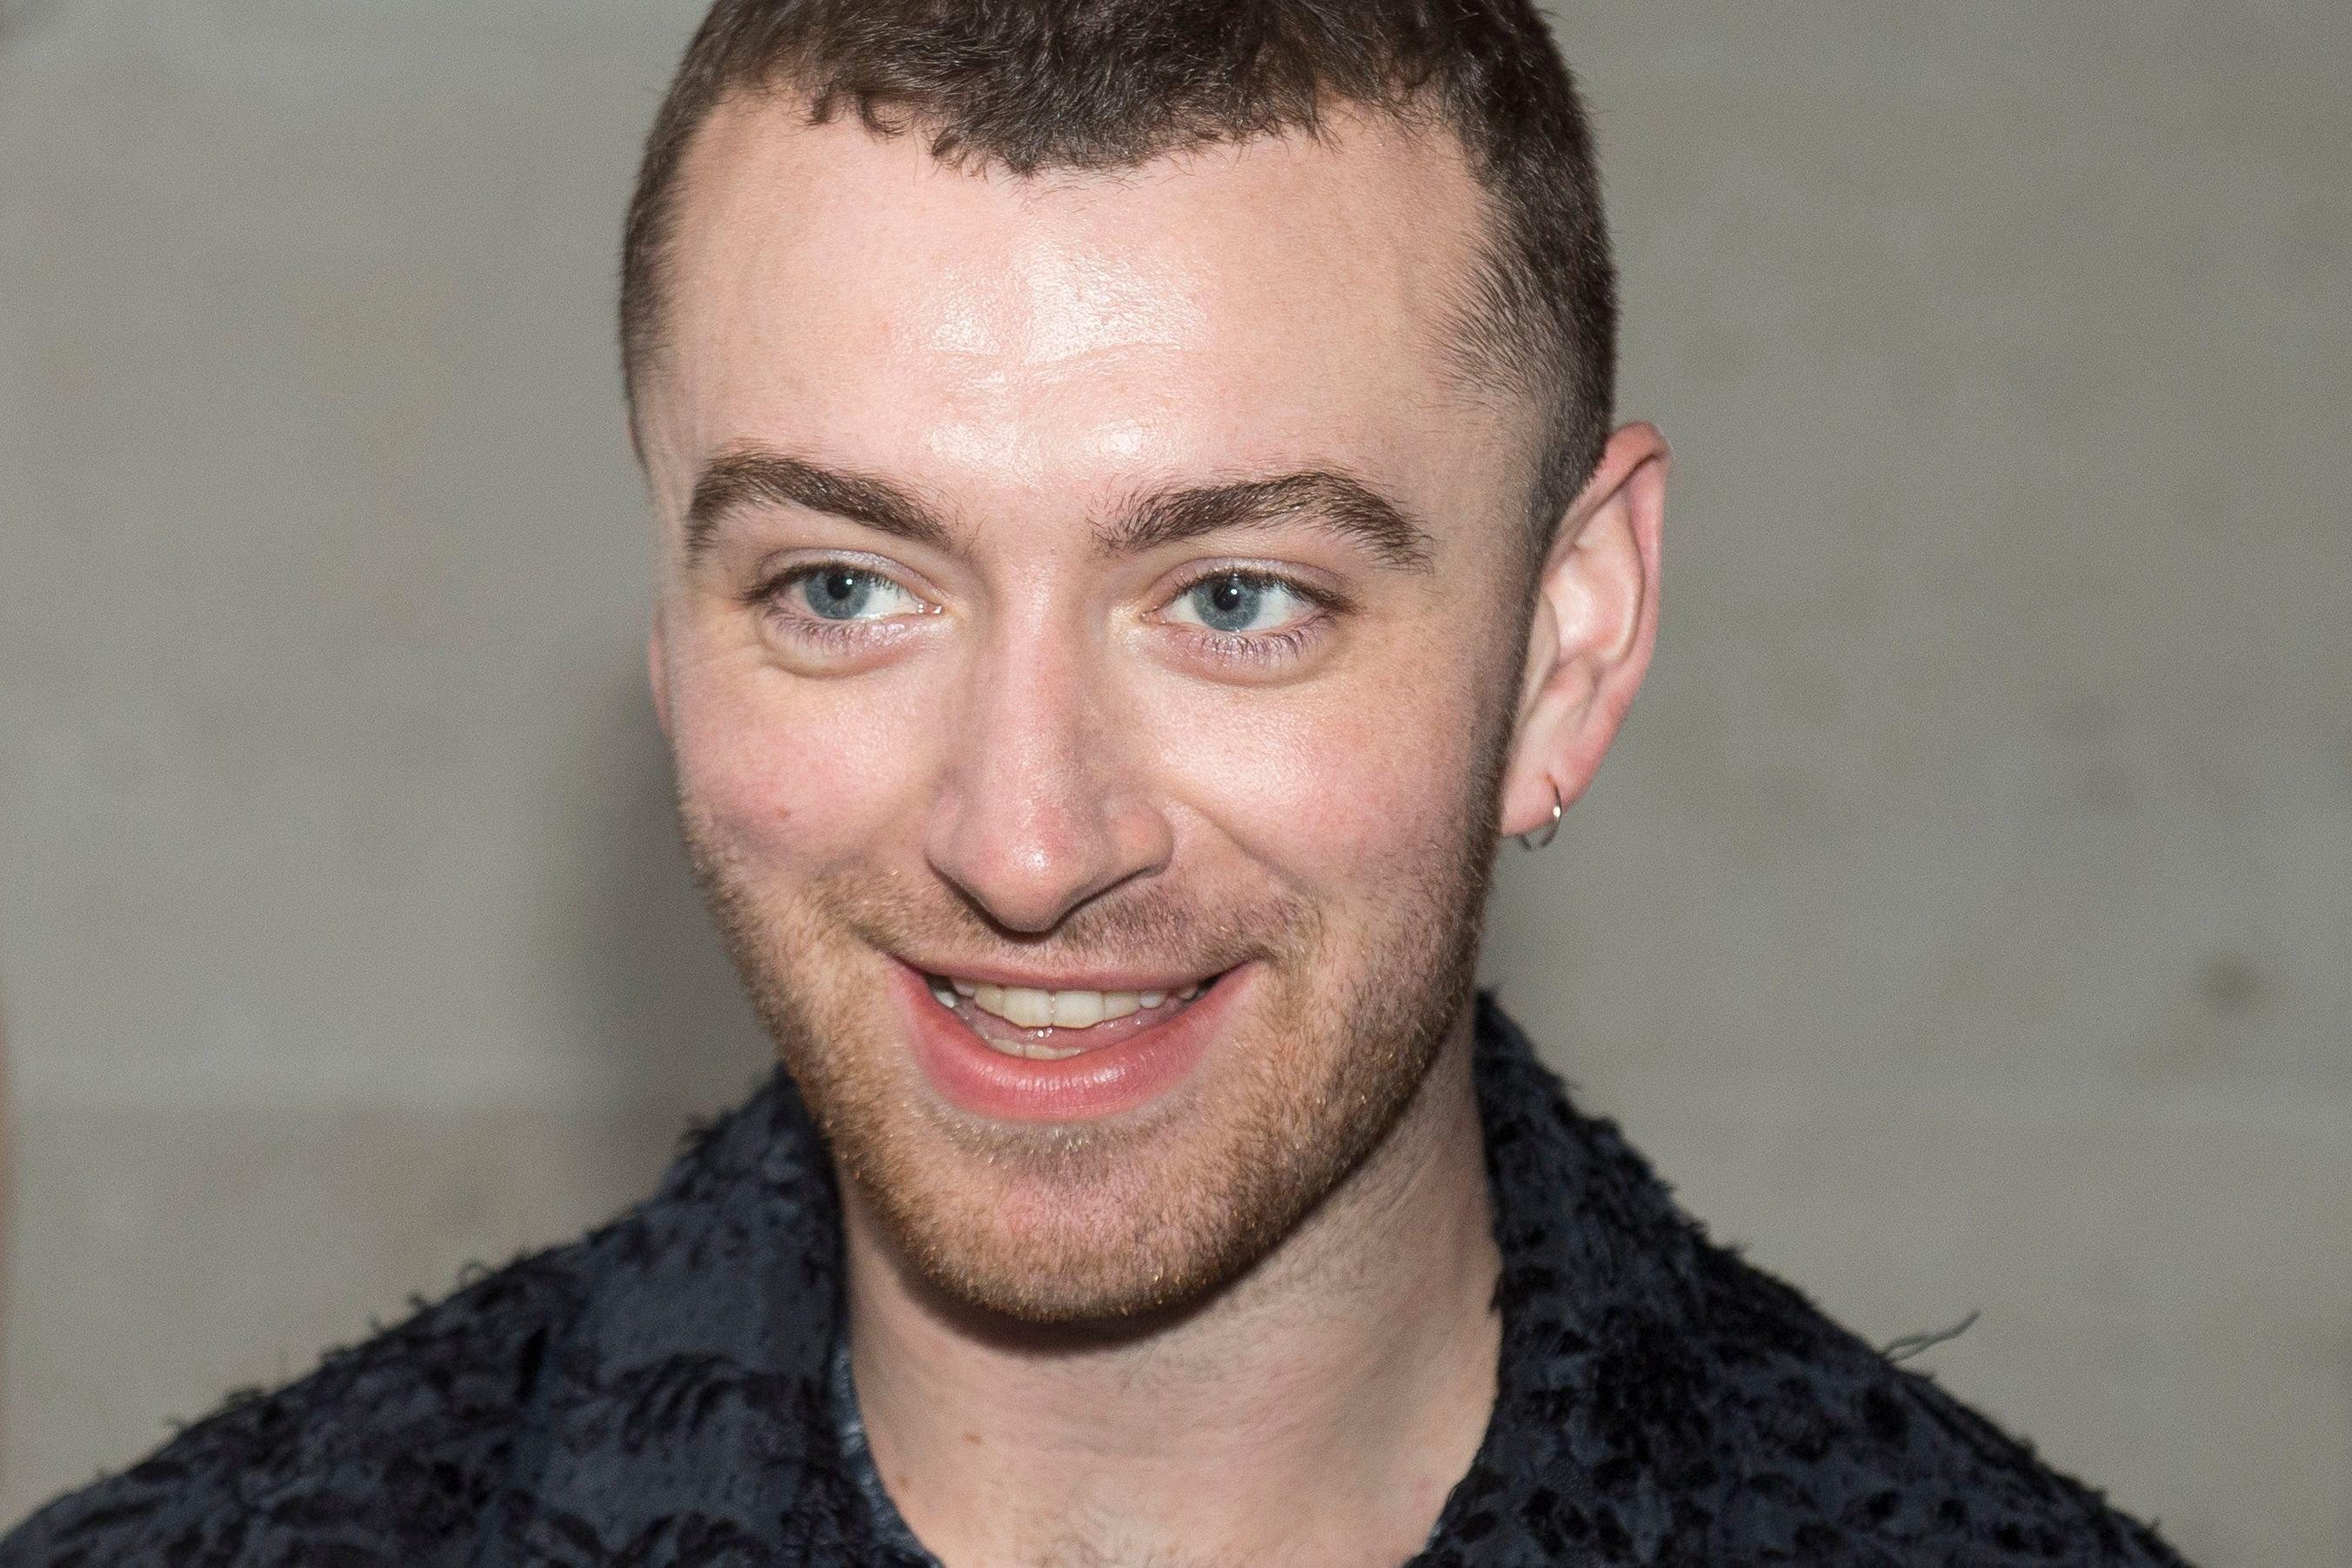 Sam Smith Opens Up About Gender Identity: 'I Feel Just As Much Woman As